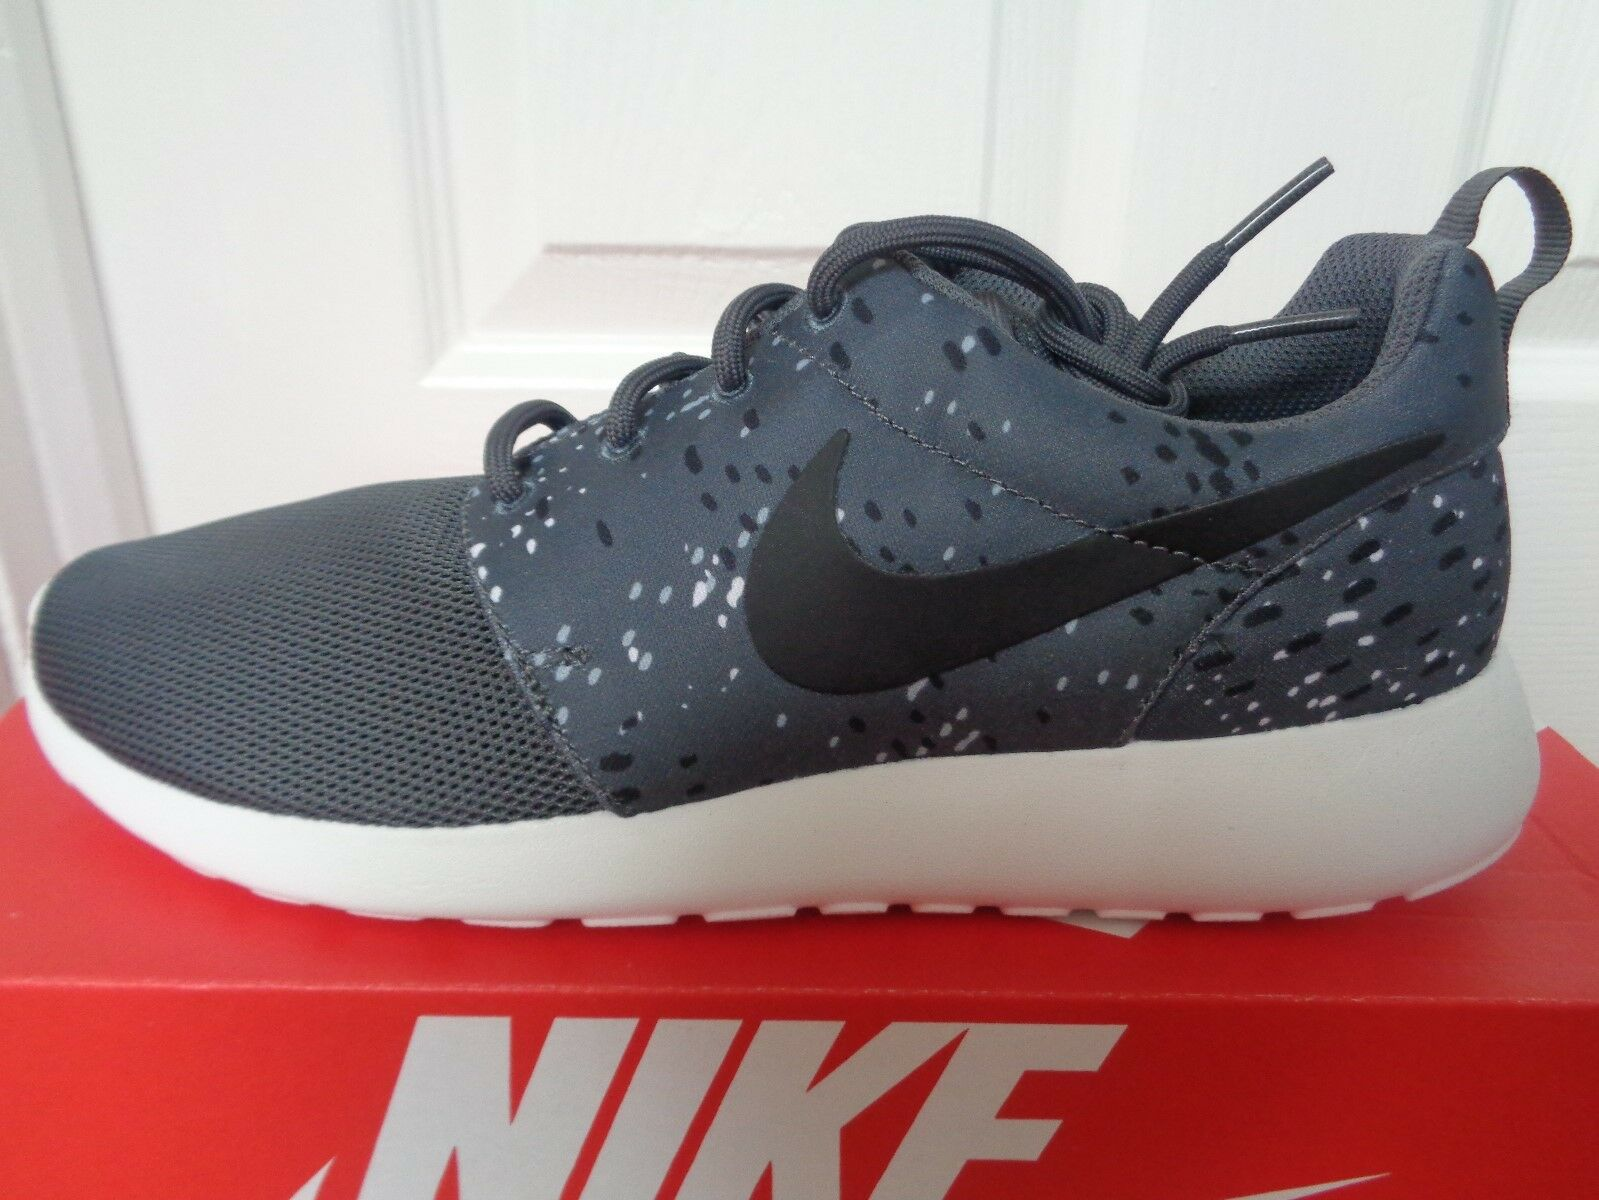 buy popular 01eb8 62eb6 Nike Roshe One One One stampa Wmns Scarpe Da Ginnastica Scarpe Da Ginnastica  844958 002 EU 40.5 US 9 NUOVE a1e39c